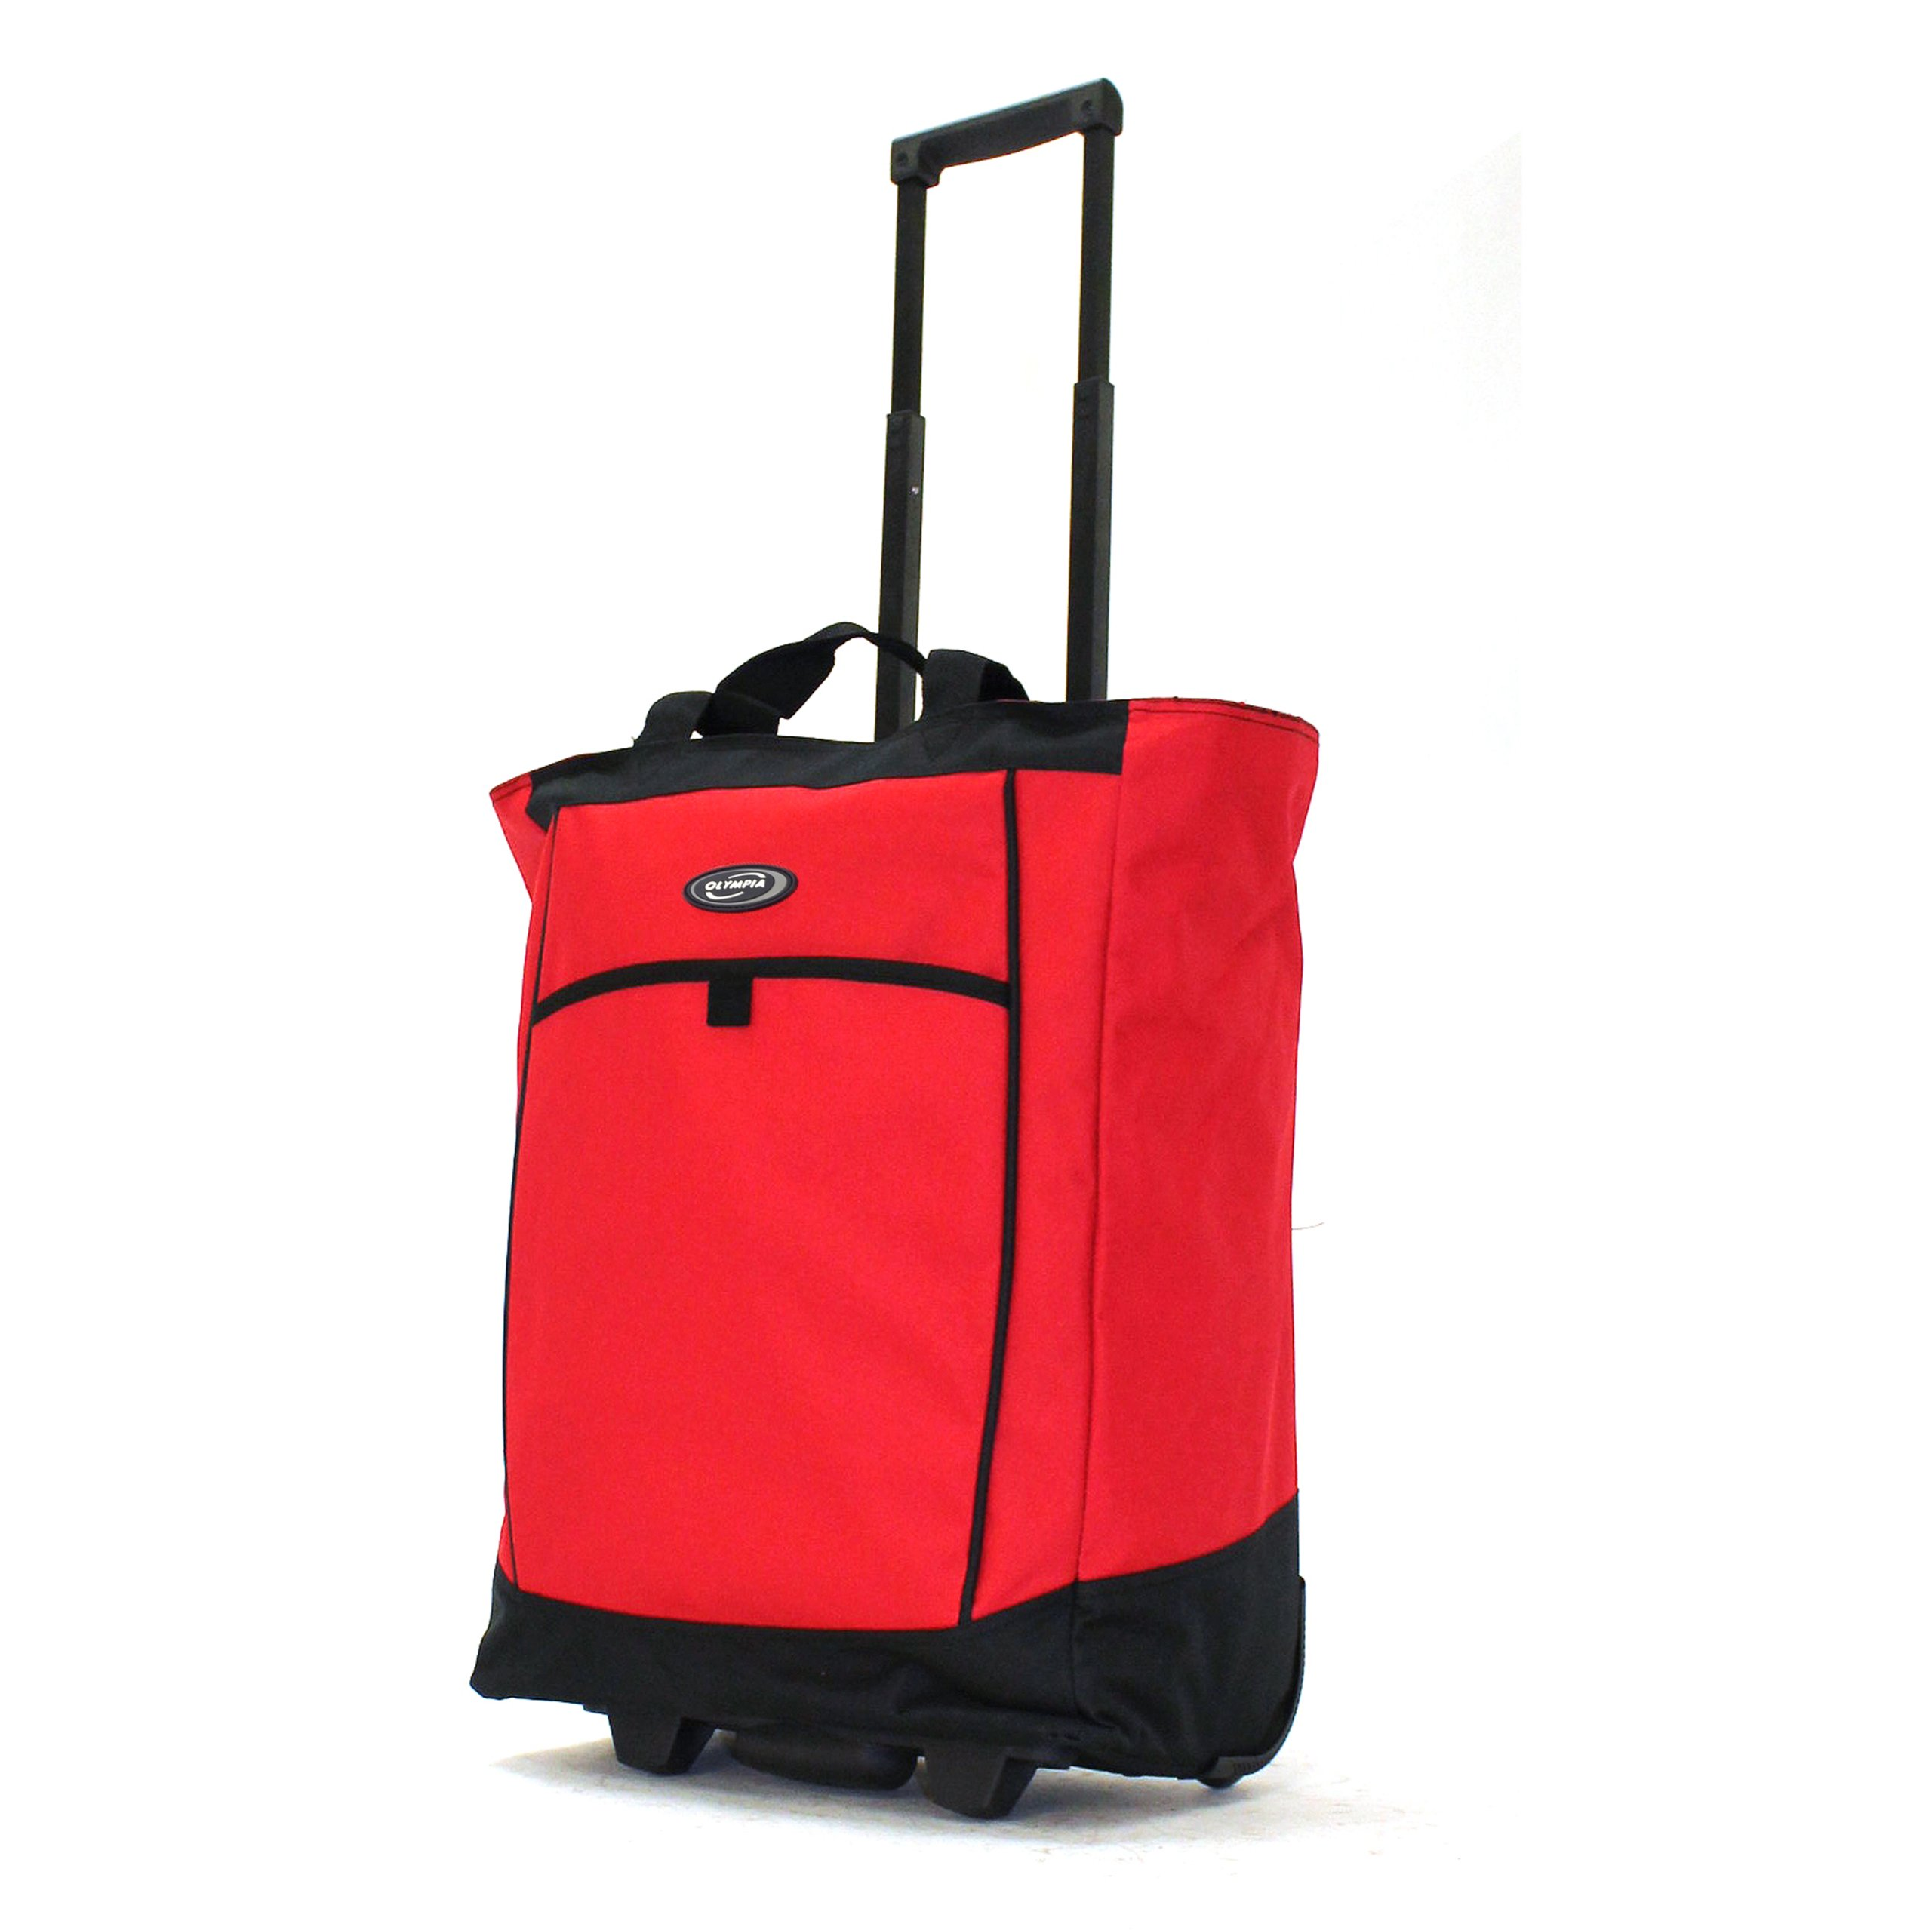 Olympia Fashion Rolling Shopper Tote - Red, 2300 cu. in.